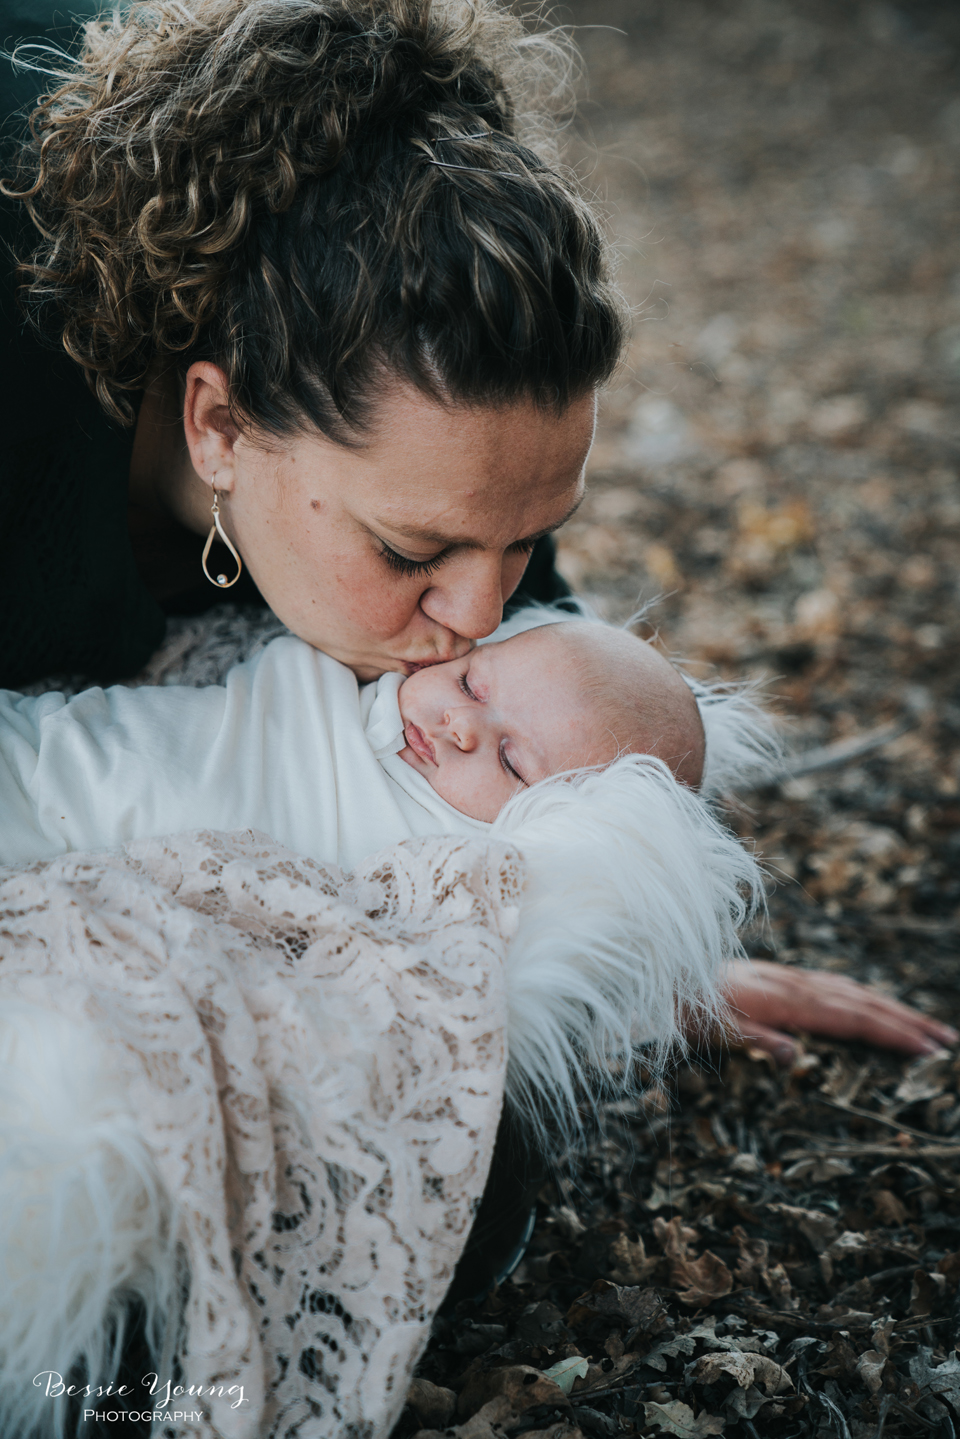 Outdoor Newborn Portraits Photographed by Bessie Young. This was a outdoor fall newborn portrait session at Indegeny Reserve. Perfect mom and baby posing idea. Sonora California